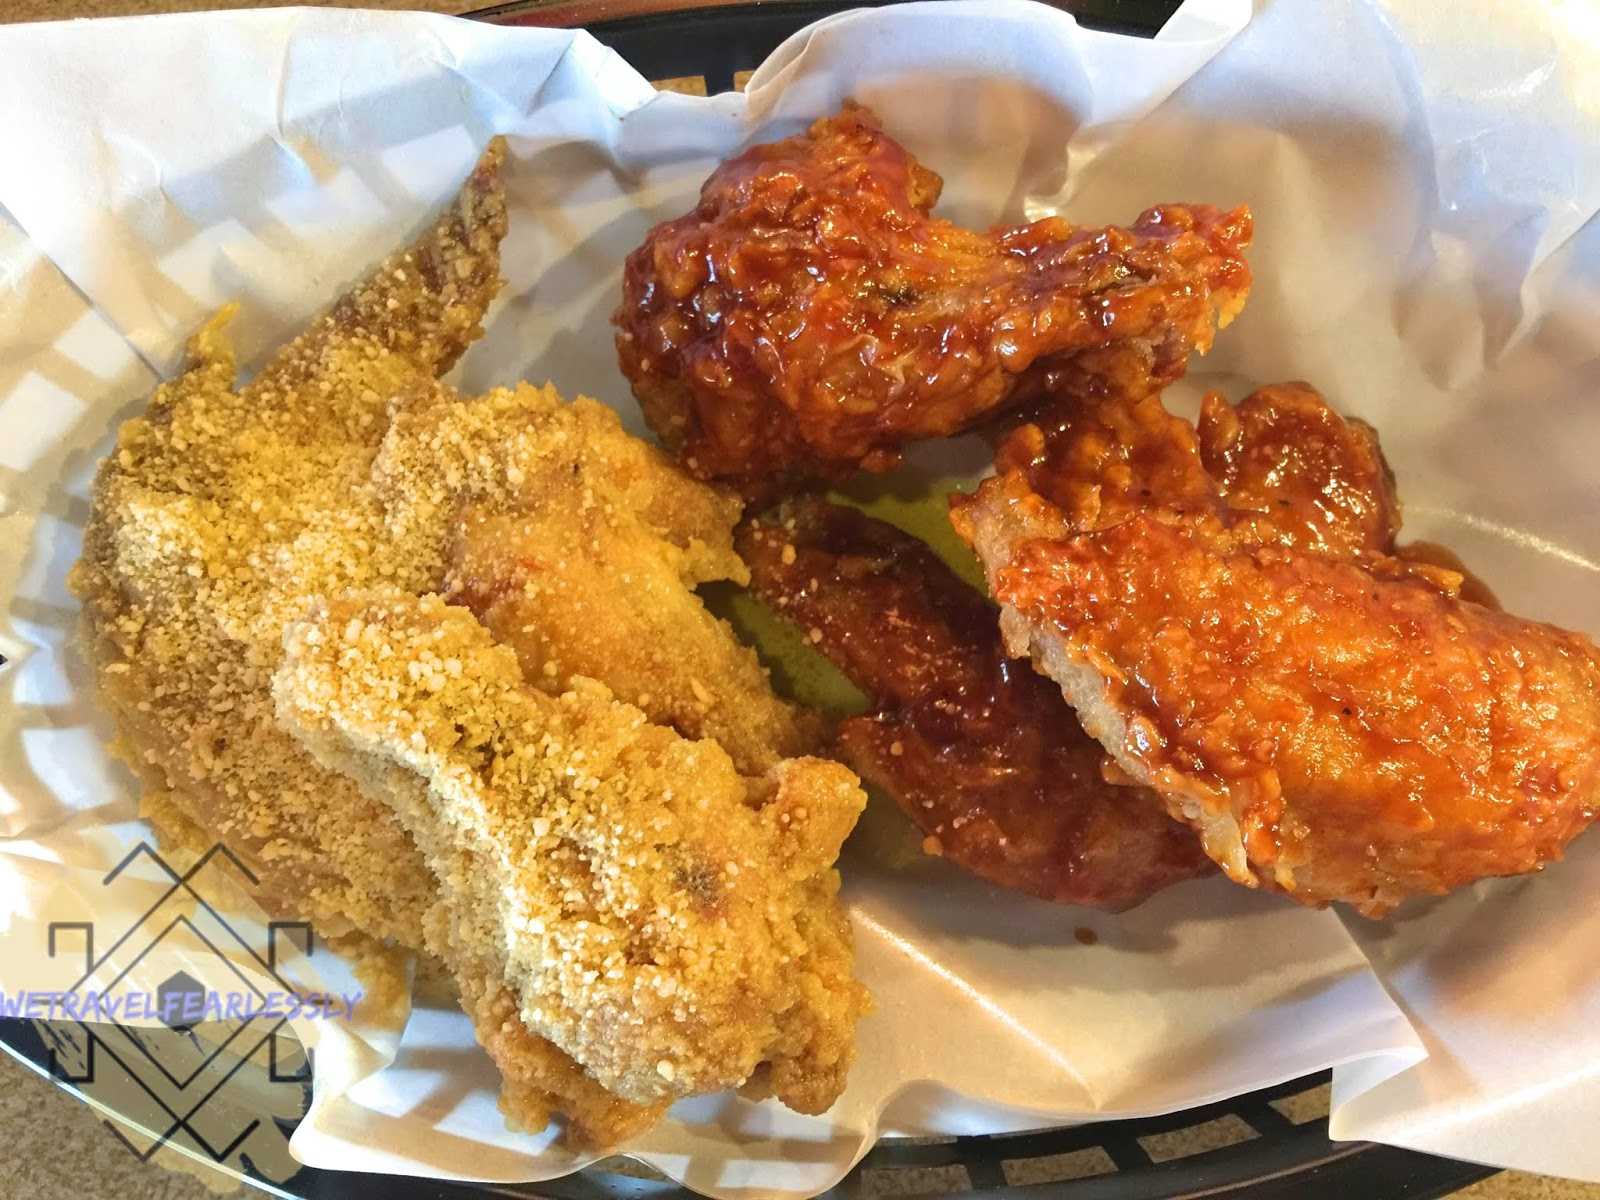 6PCS of Most Wanted Wings - Hickory Barbecue and Garlic Parmesan mix (PHP159) - Fry Shack in San Miguel, Manila - WTF Review